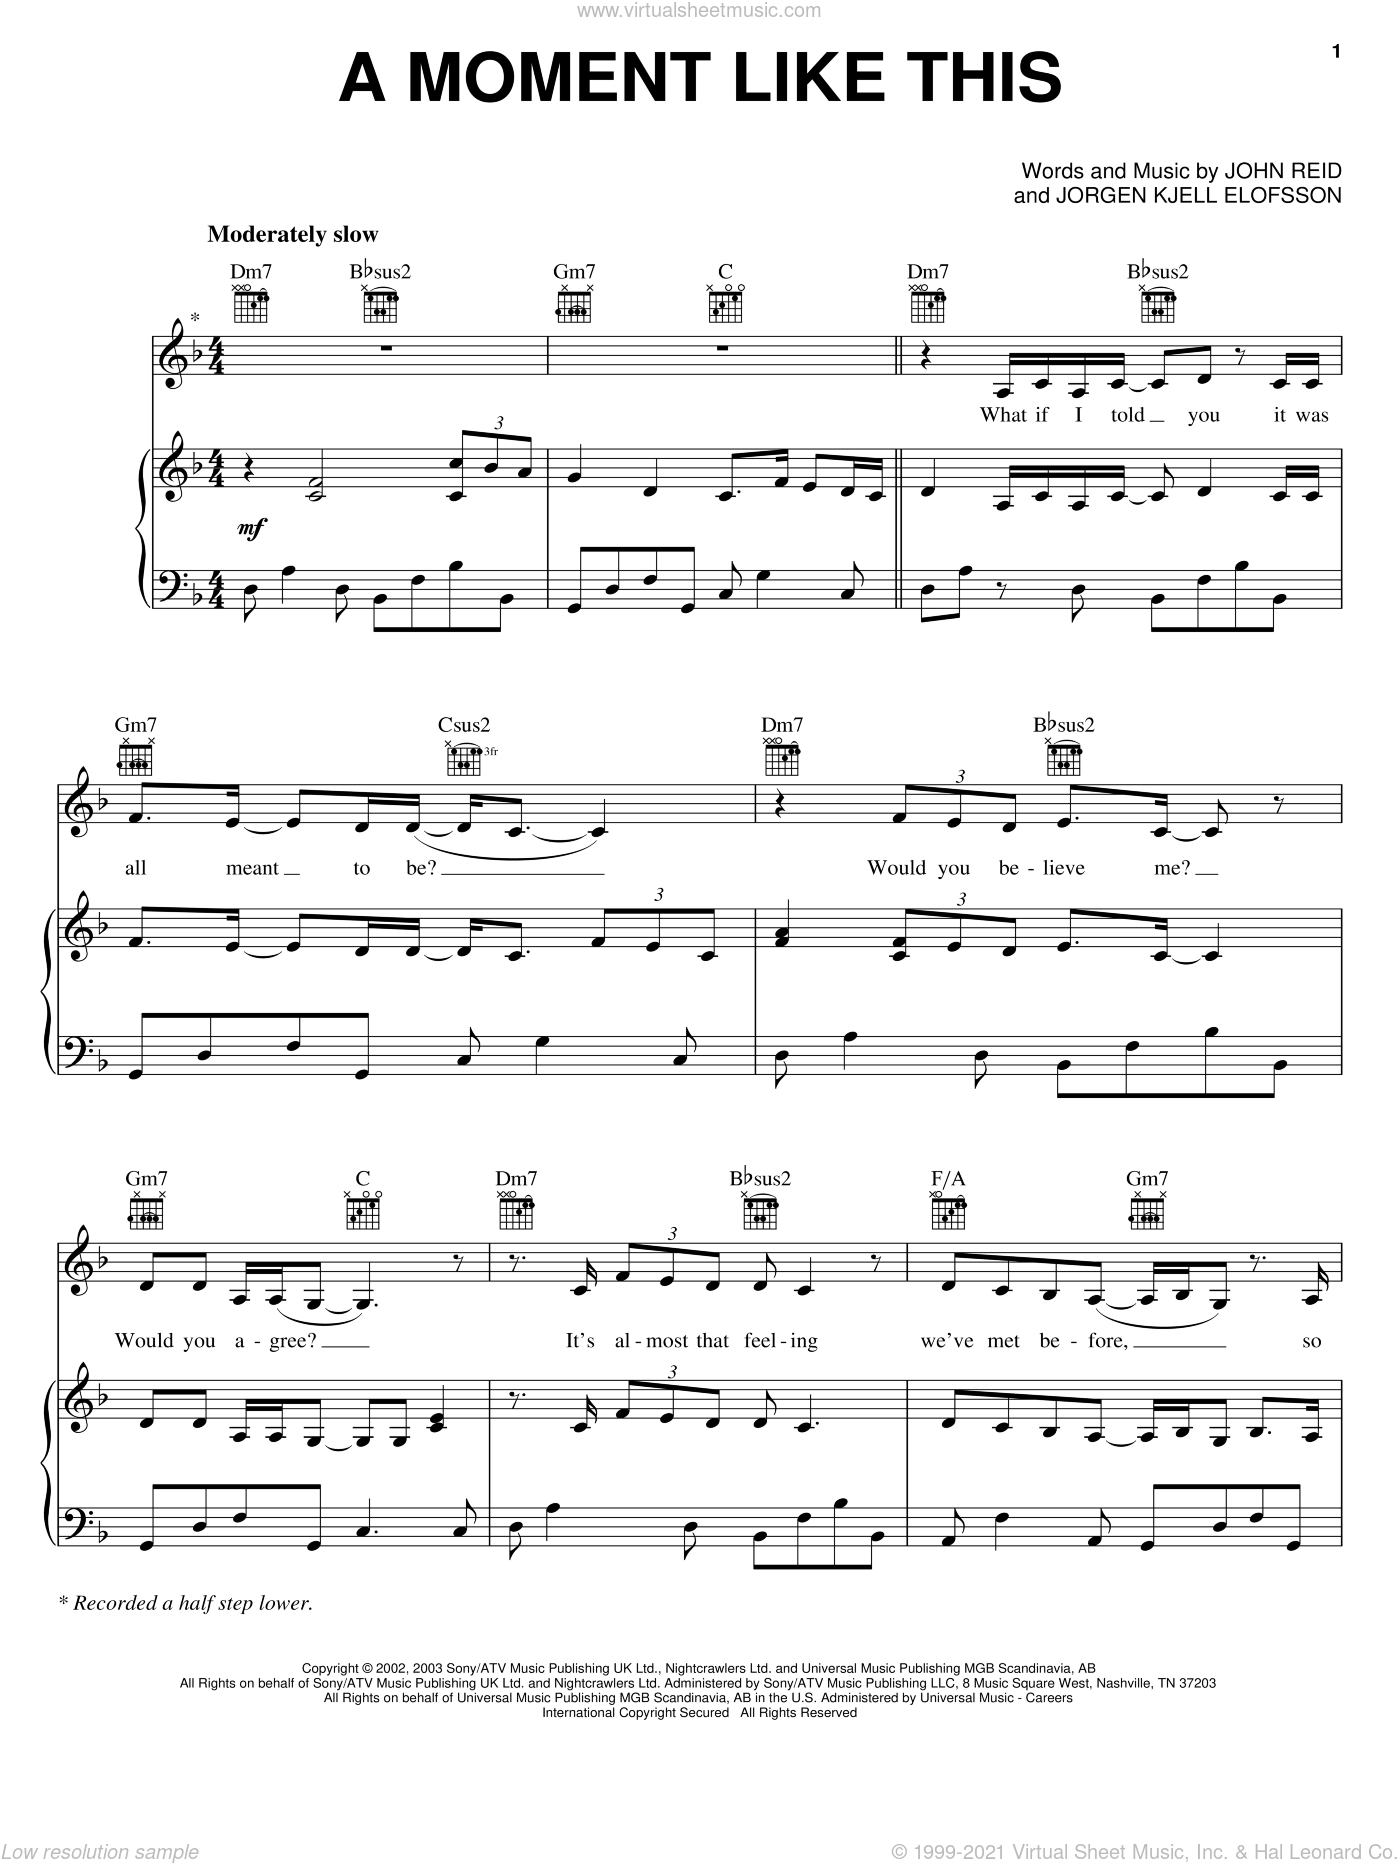 A Moment Like This sheet music for voice, piano or guitar by Jorgen Elofsson